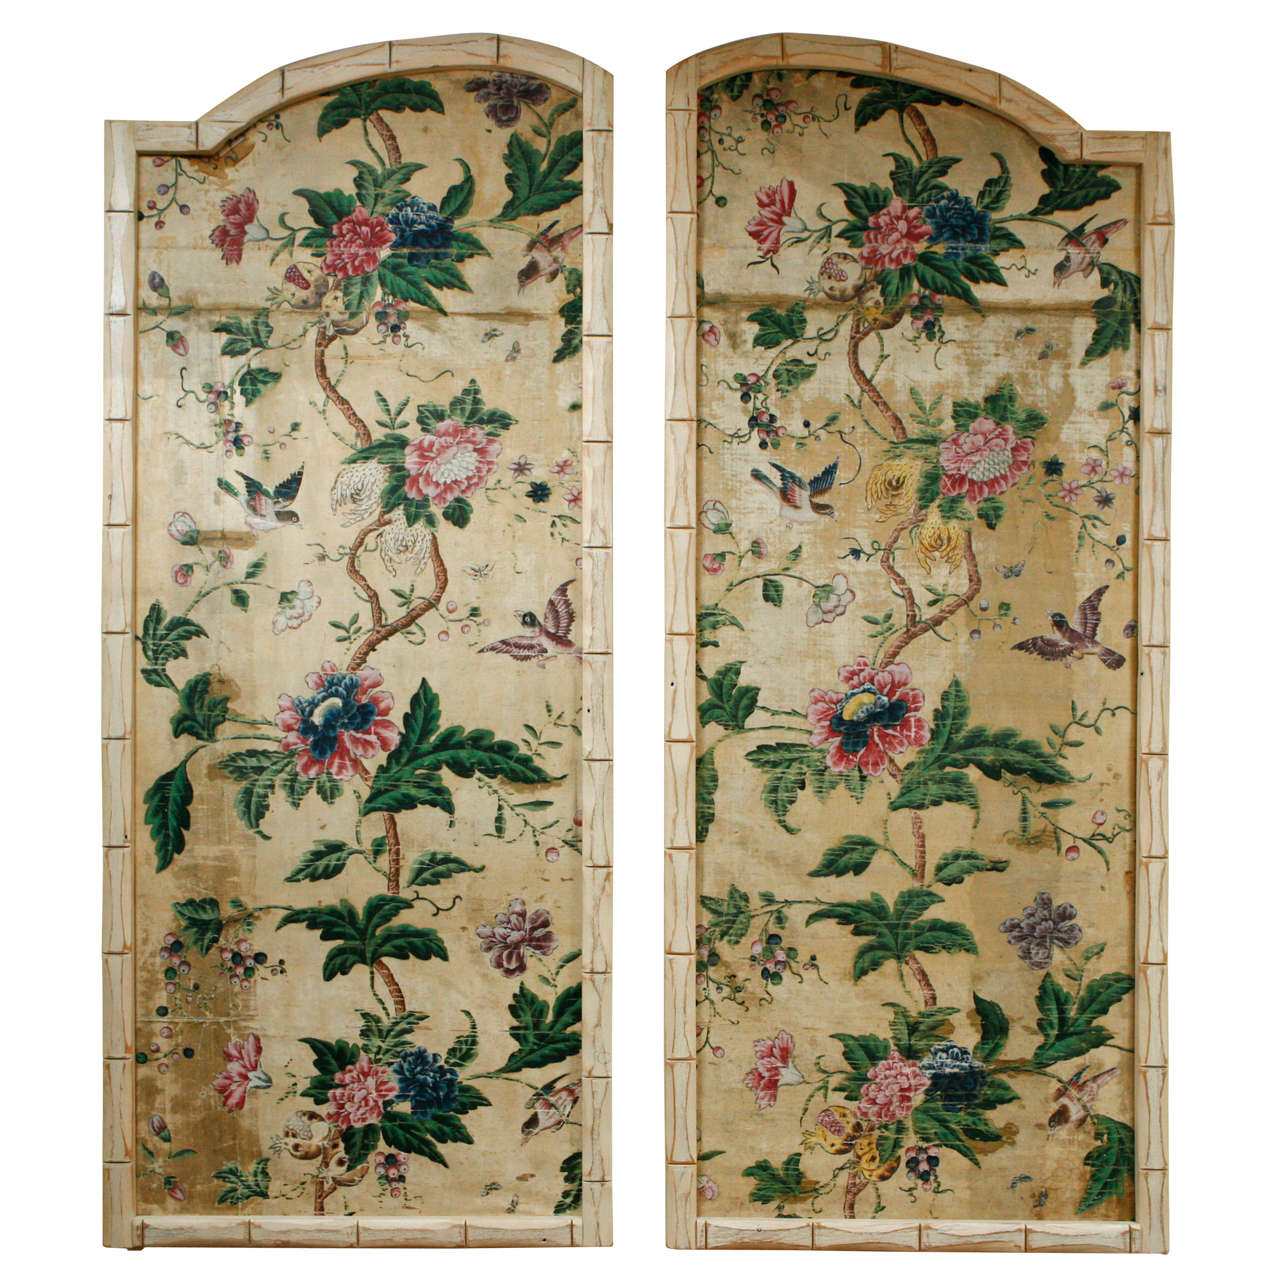 A Pair Of 18th C Chinese Silk Panels In Faux Bamboo